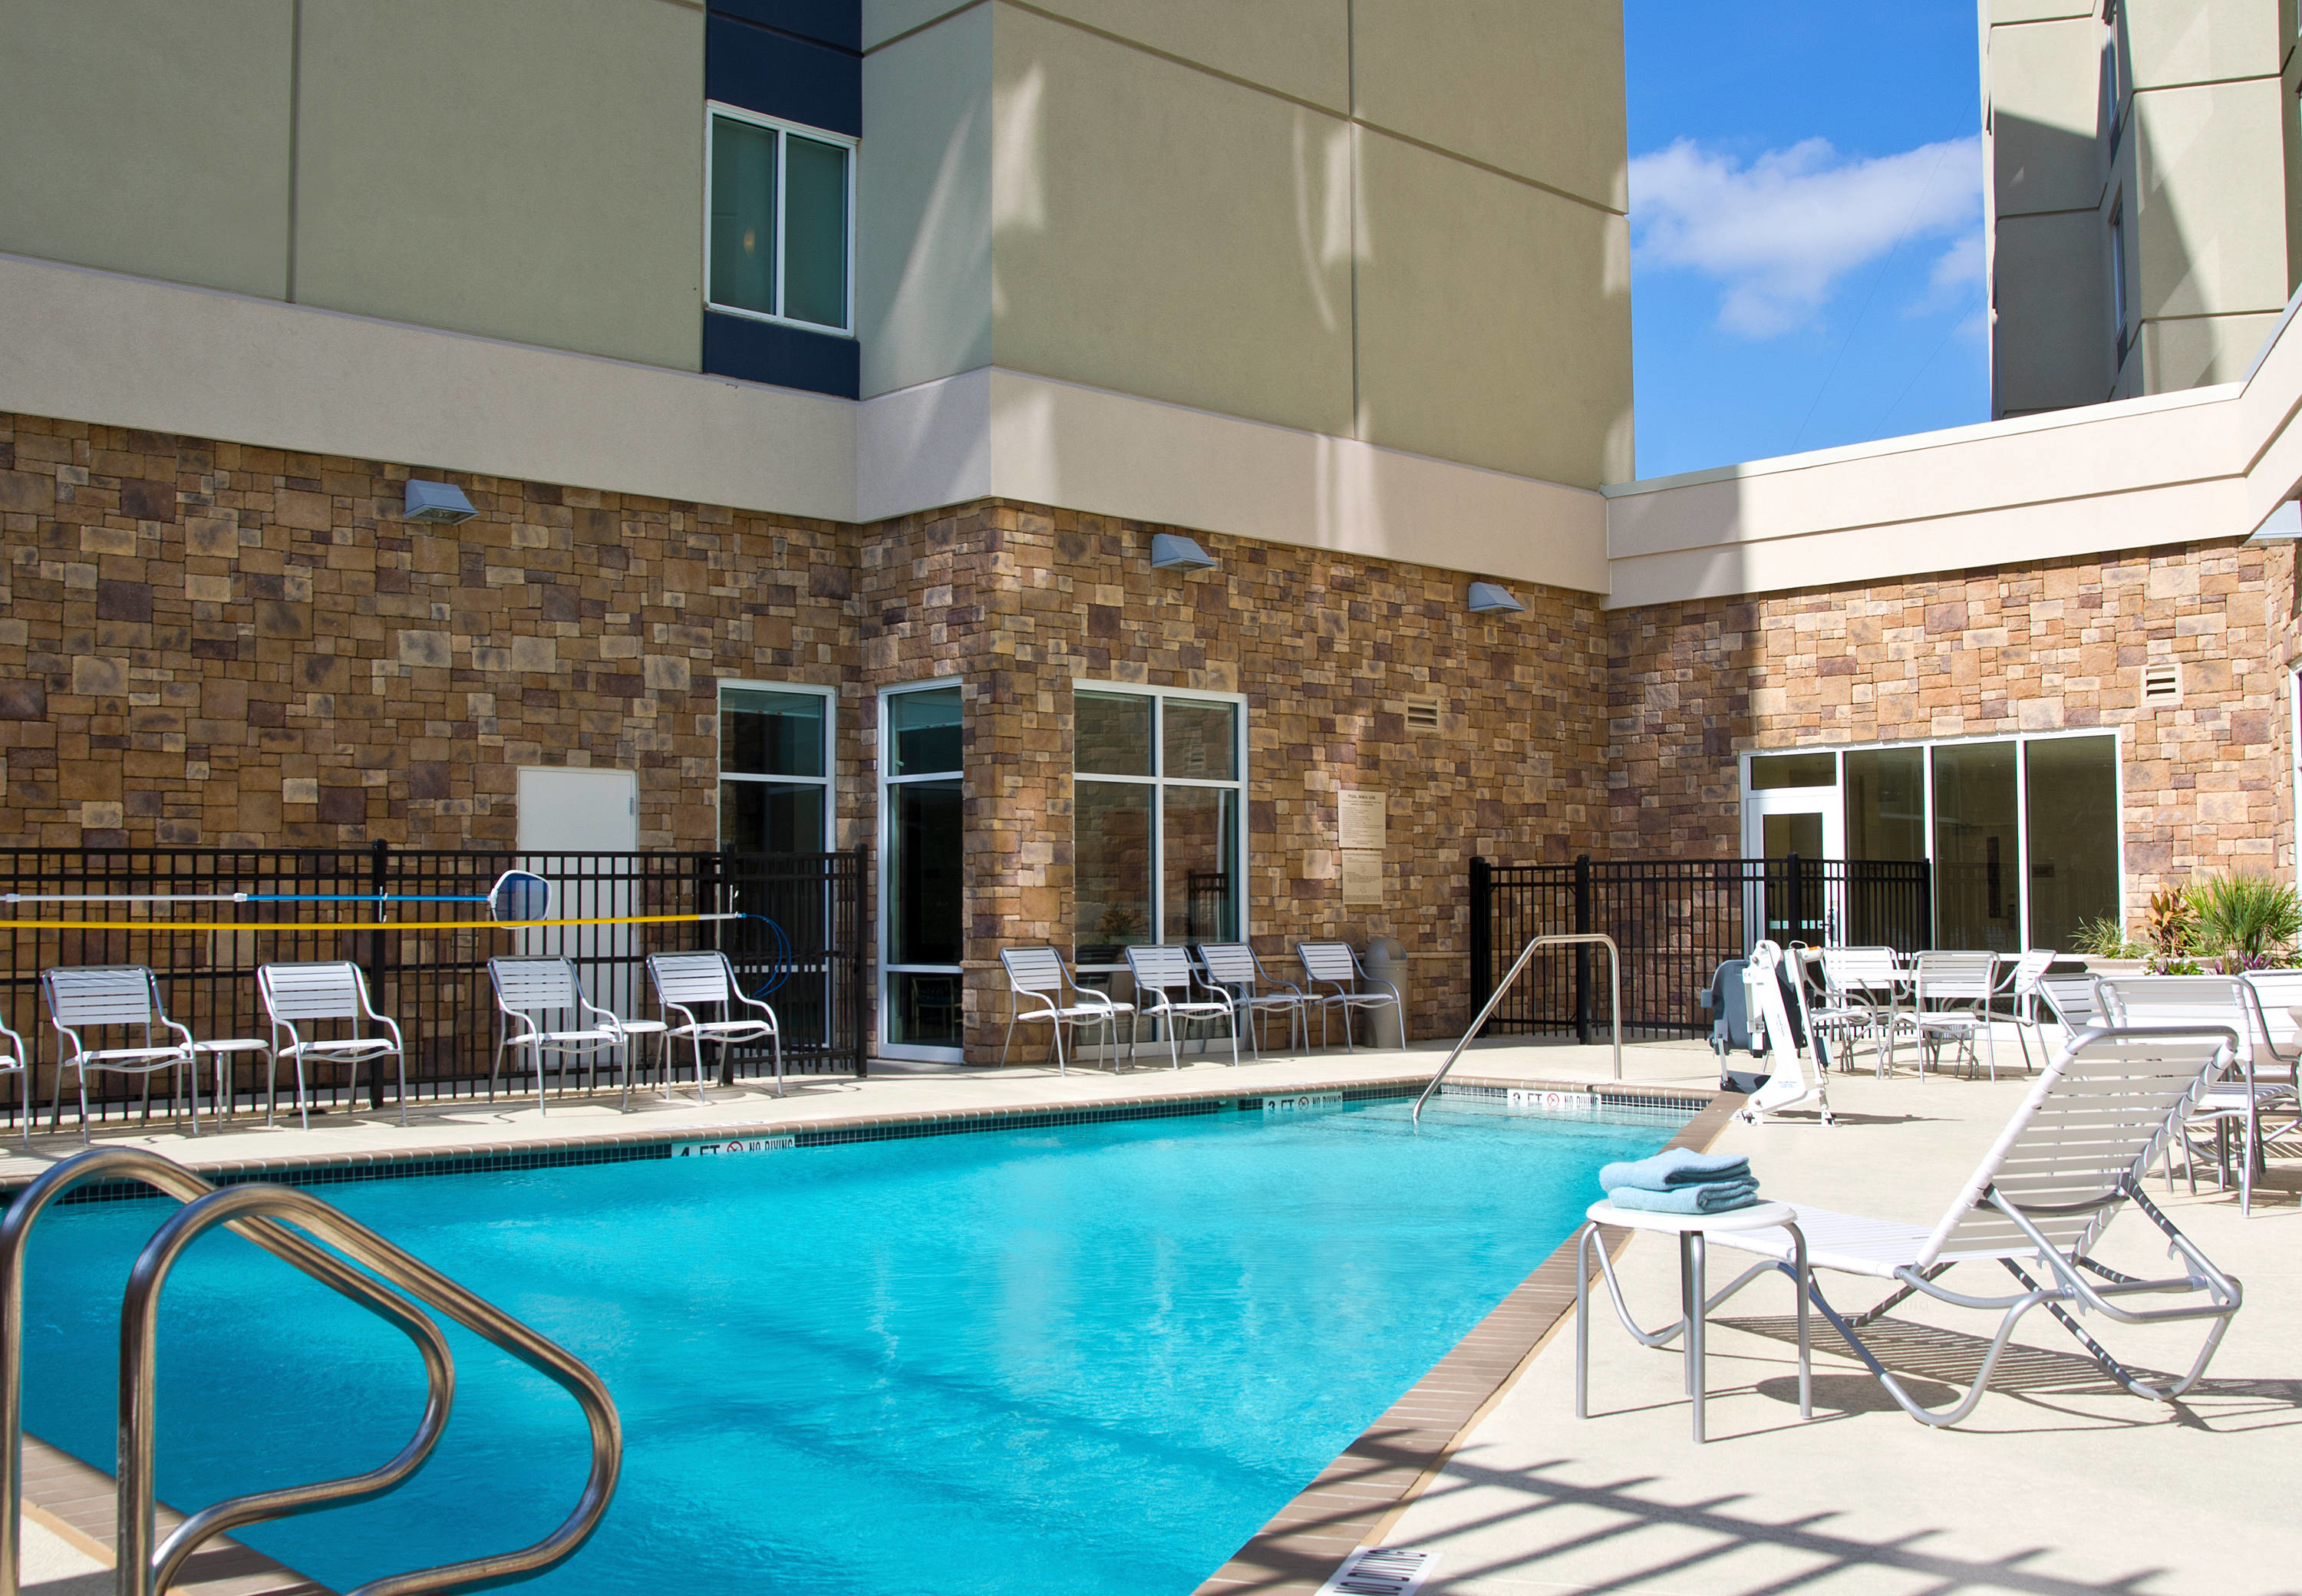 SpringHill Suites by Marriott San Antonio Alamo Plaza/Convention Center image 1